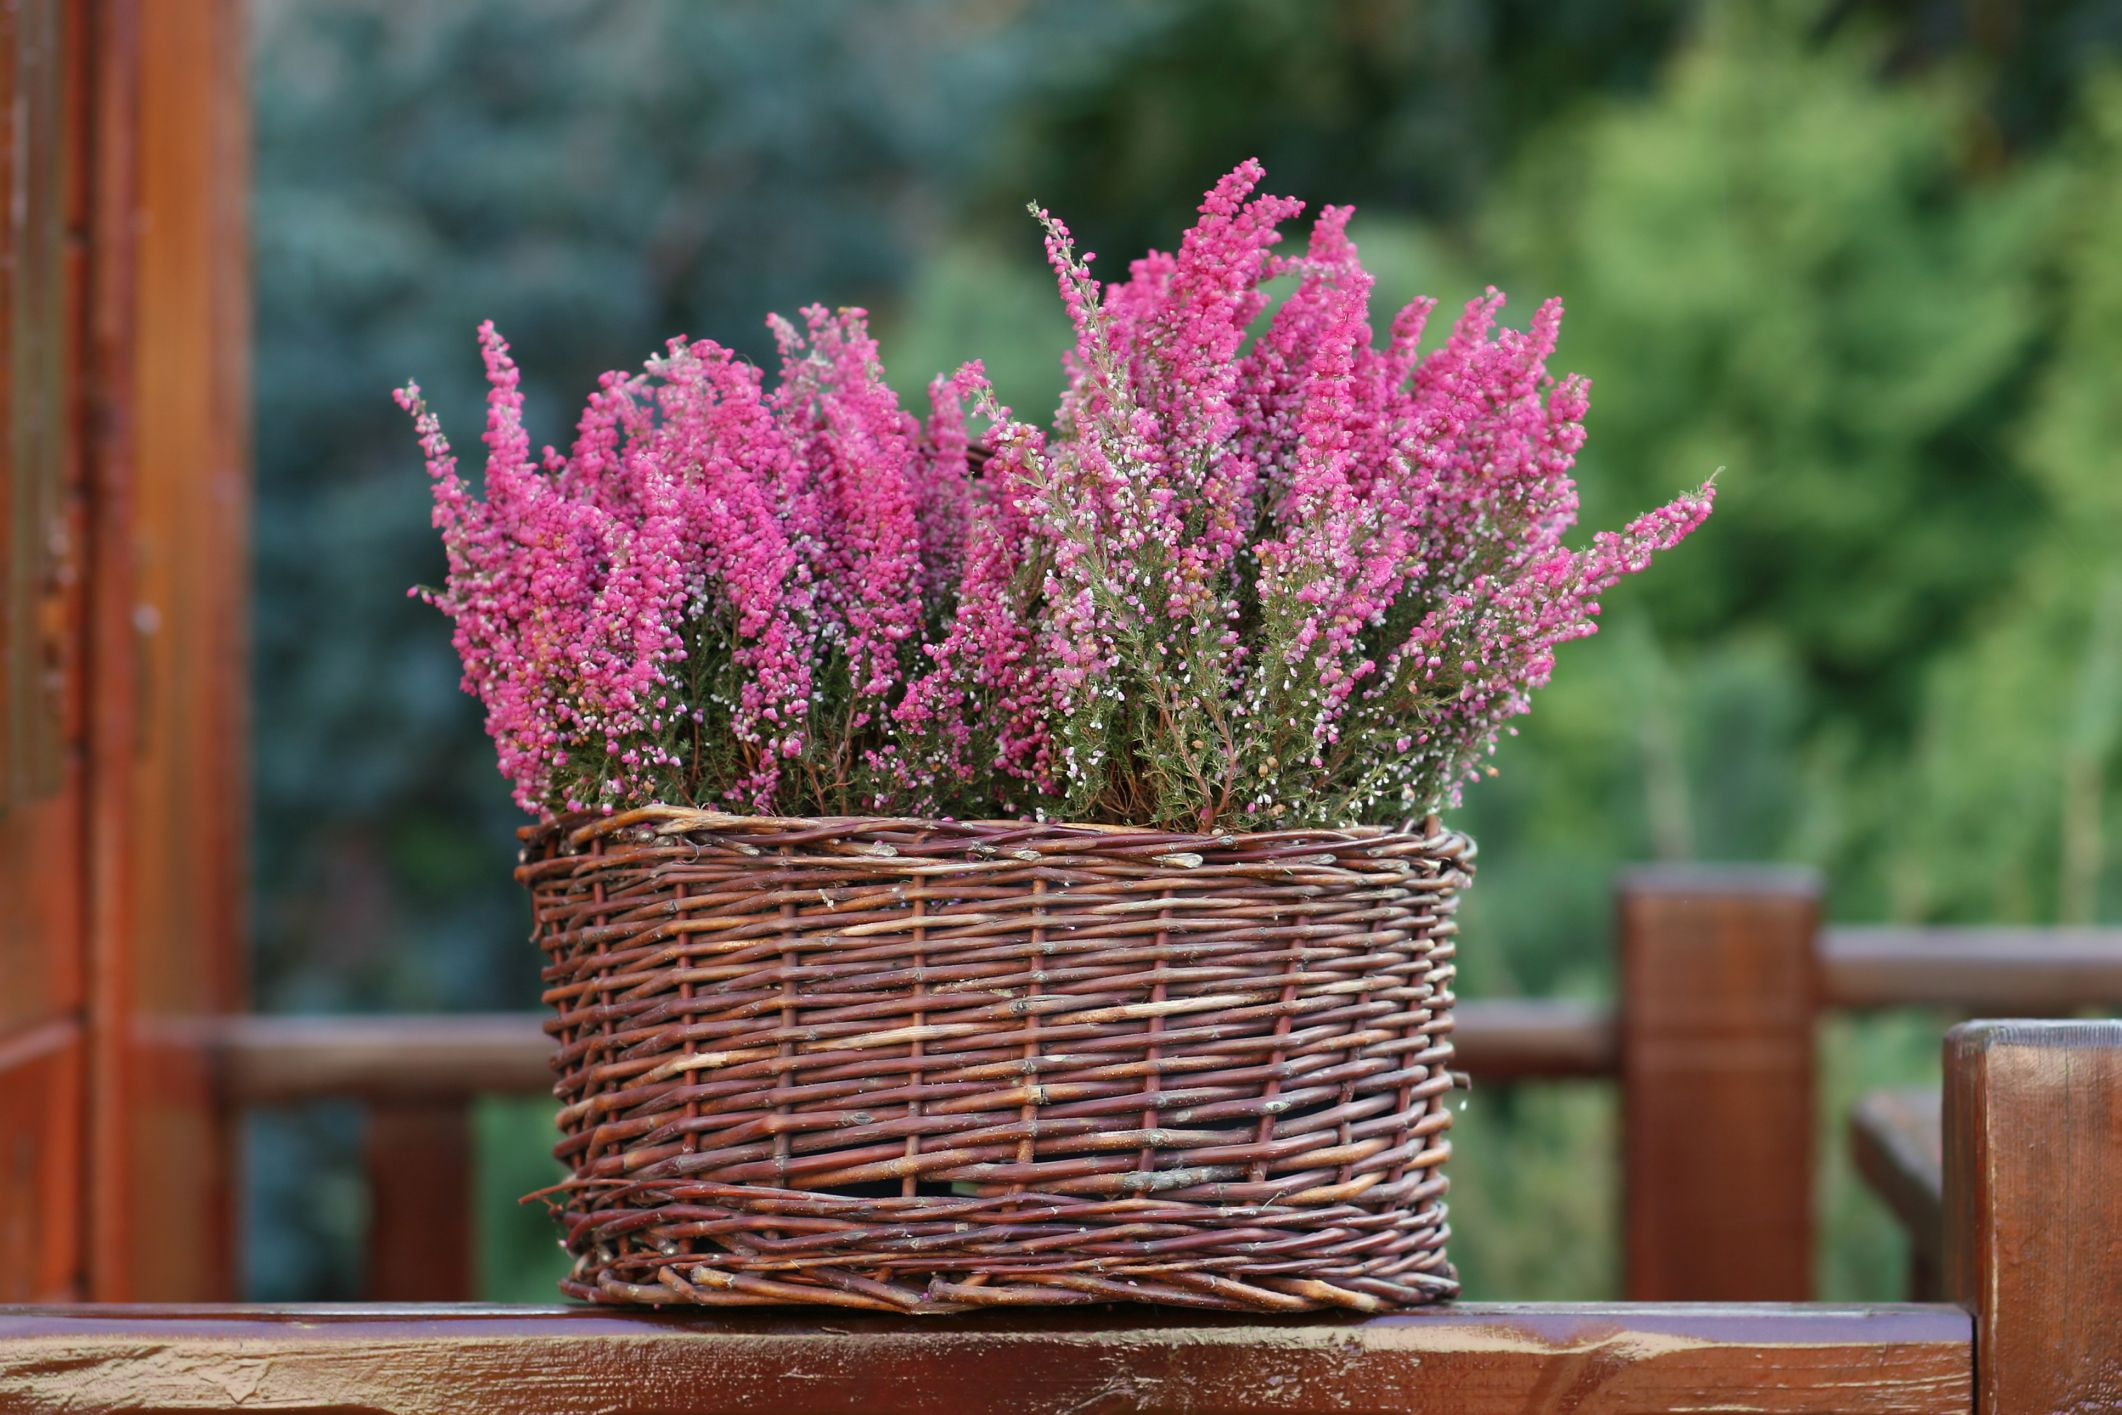 What Is The Meaning Of The Heather Flower Heather Flower Heather Plant Pretty Plants